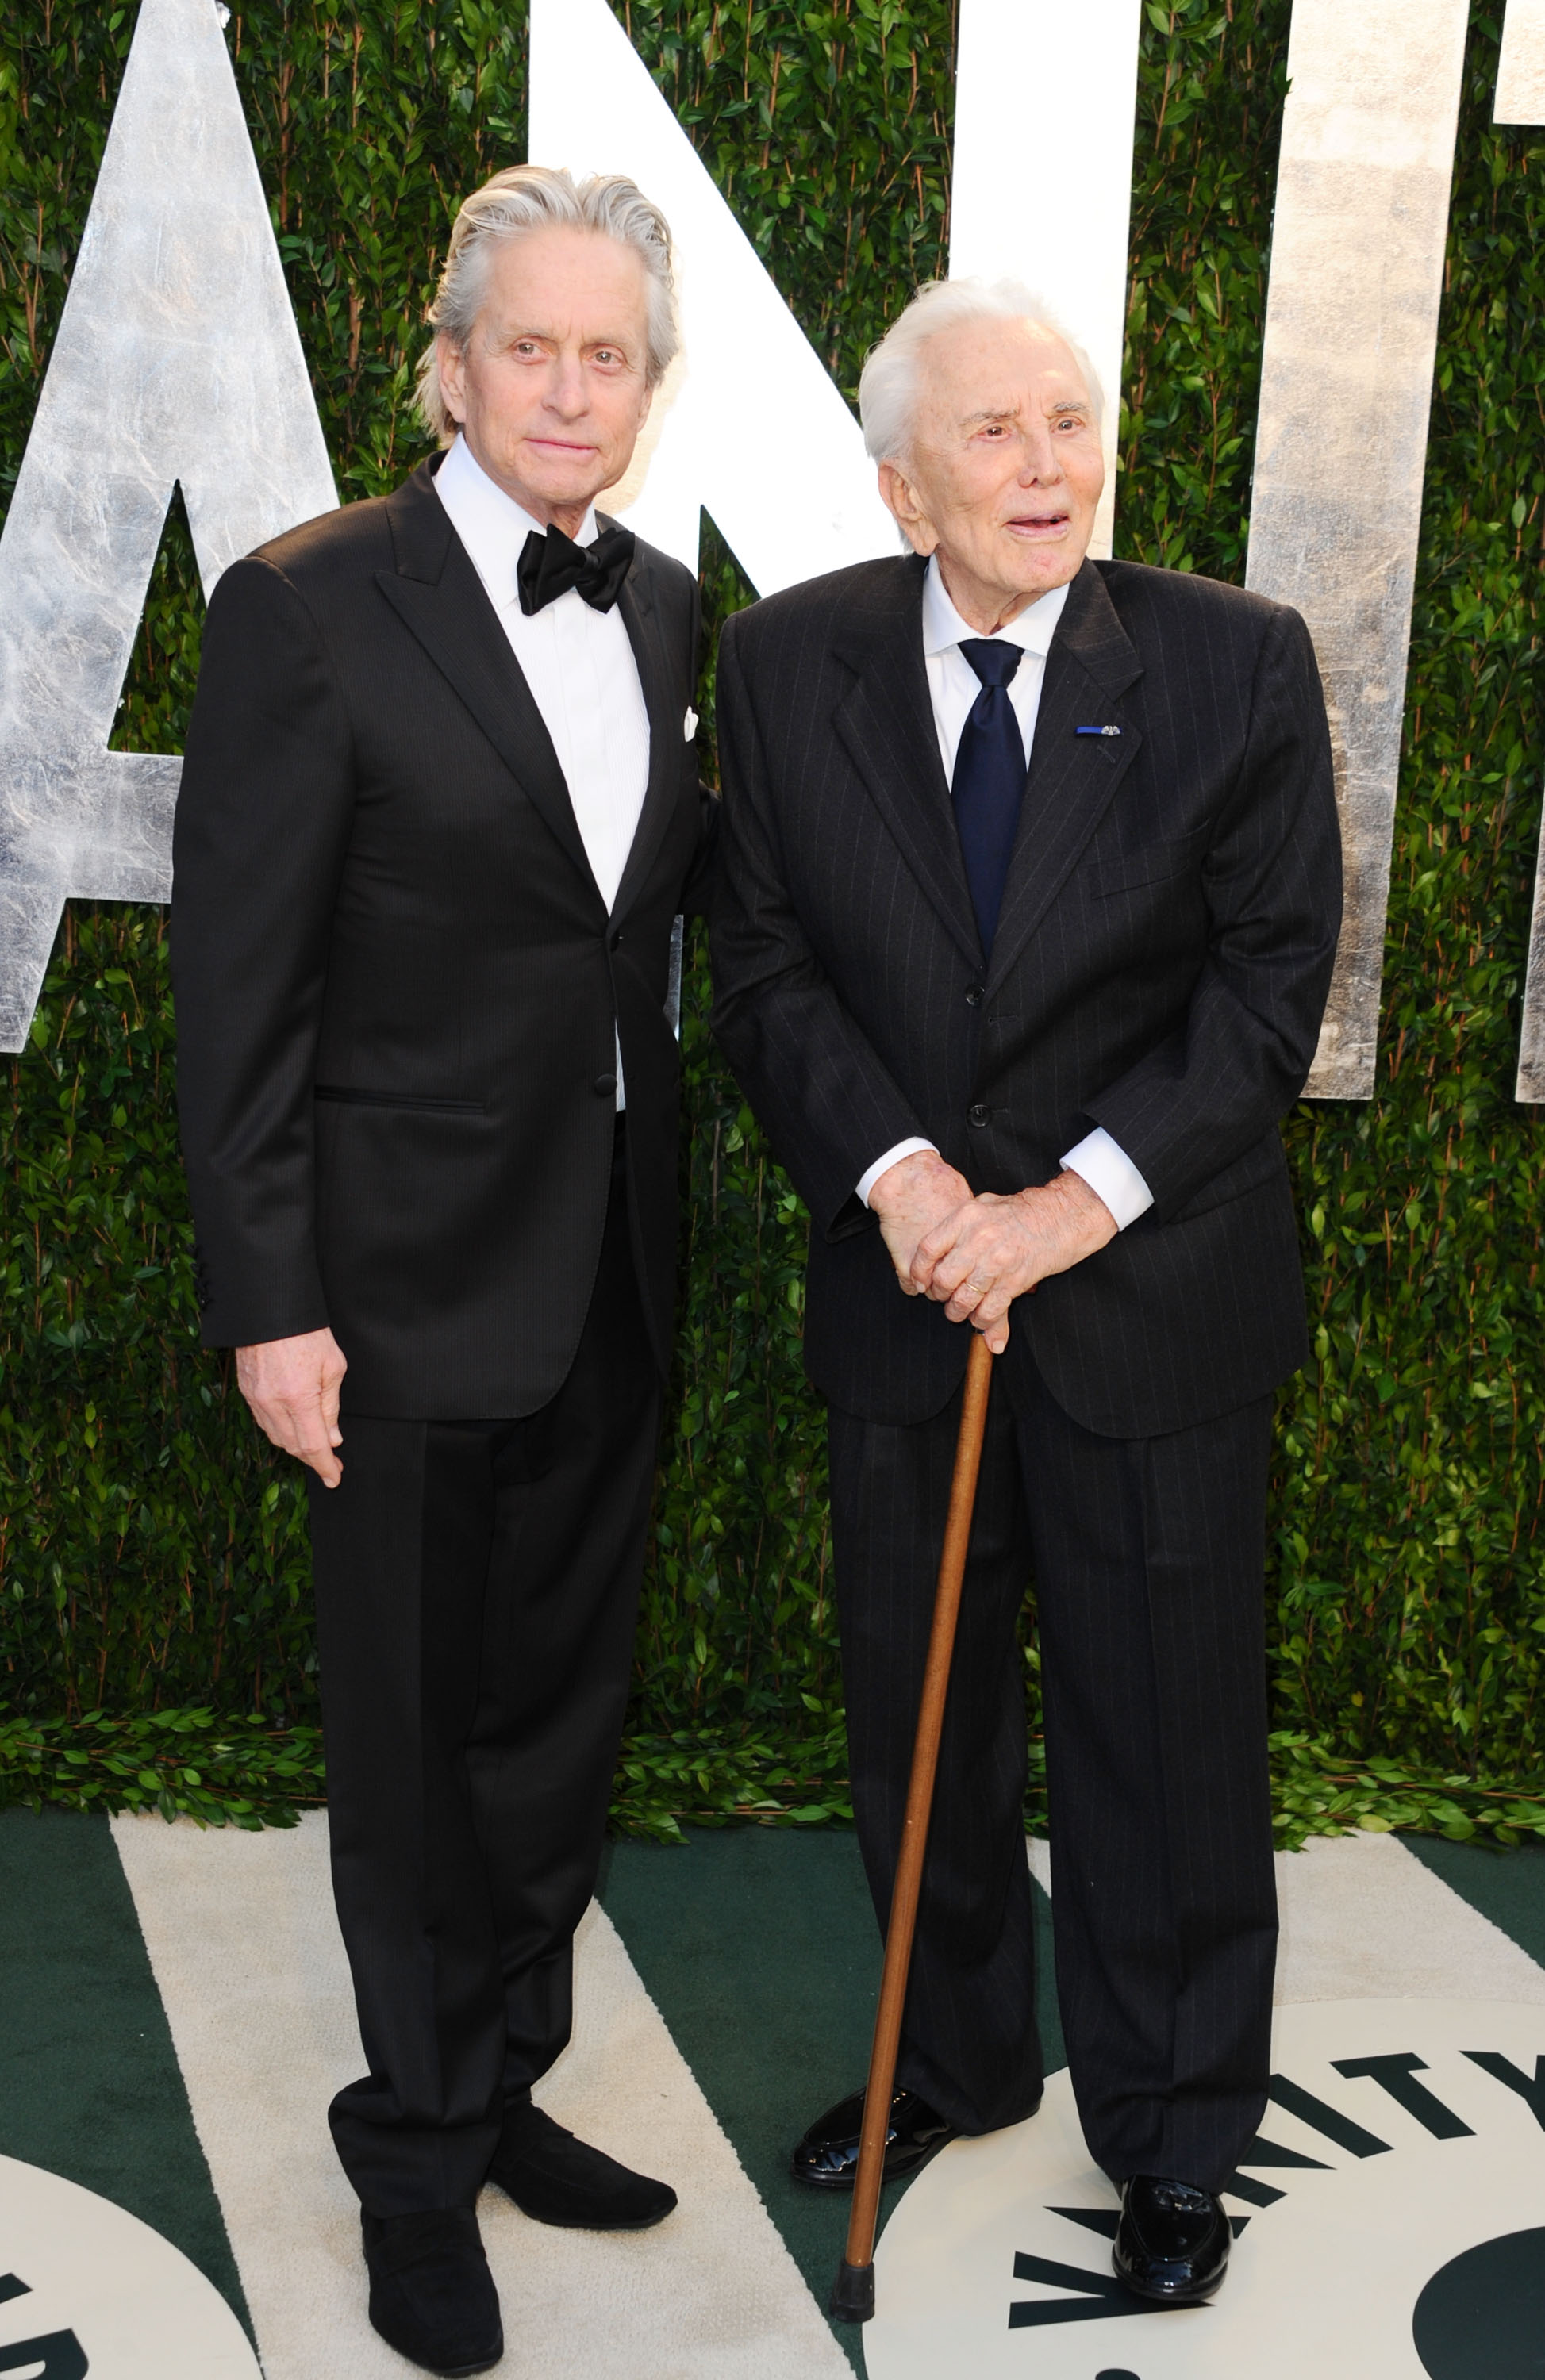 Actors Michael Douglas and Kirk Douglas arrive at the 2012 Vanity Fair Oscar Party hosted by Graydon Carter at Sunset Tower on February 26, 2012, in West Hollywood, California. (Getty Images)